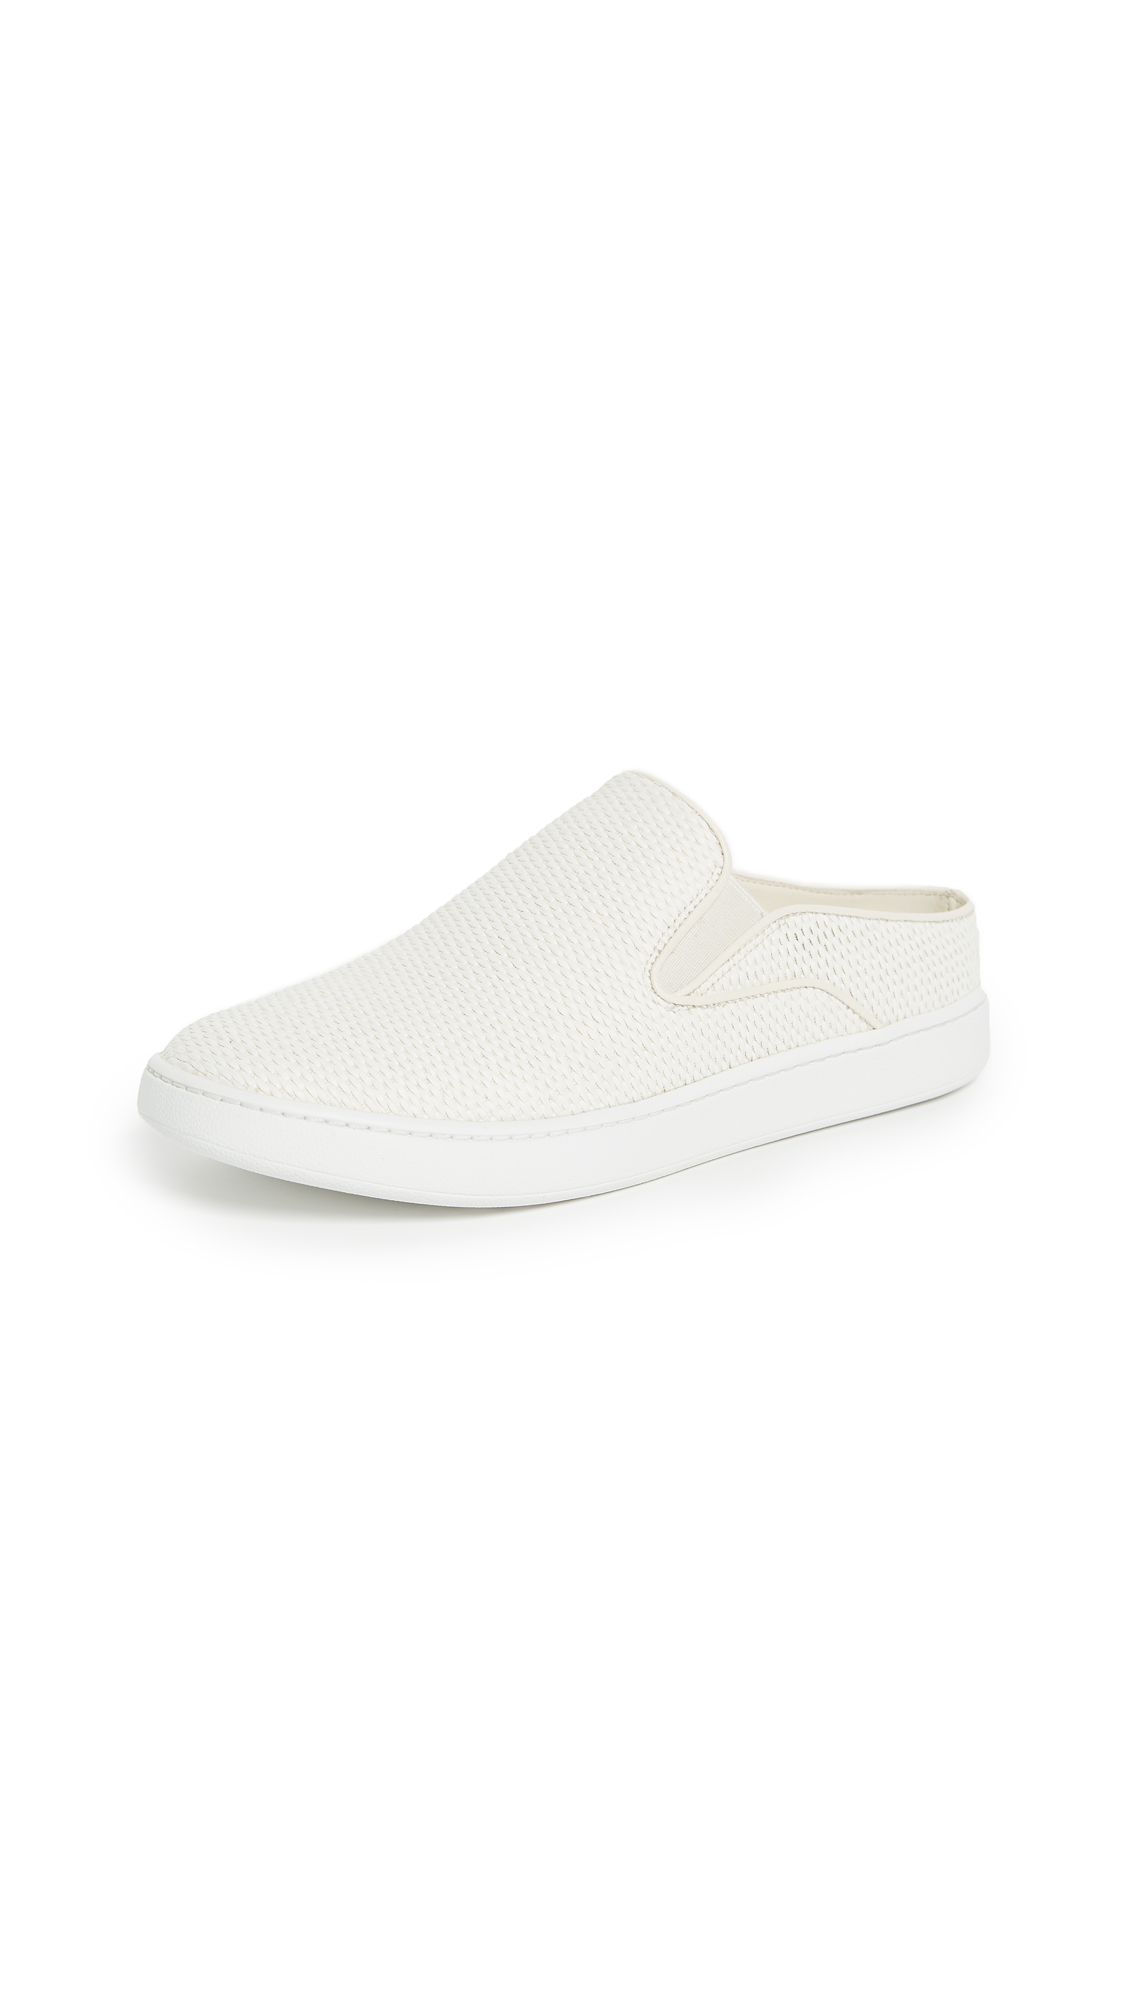 Vince Verrell 4 Slide Sneakers - Off White